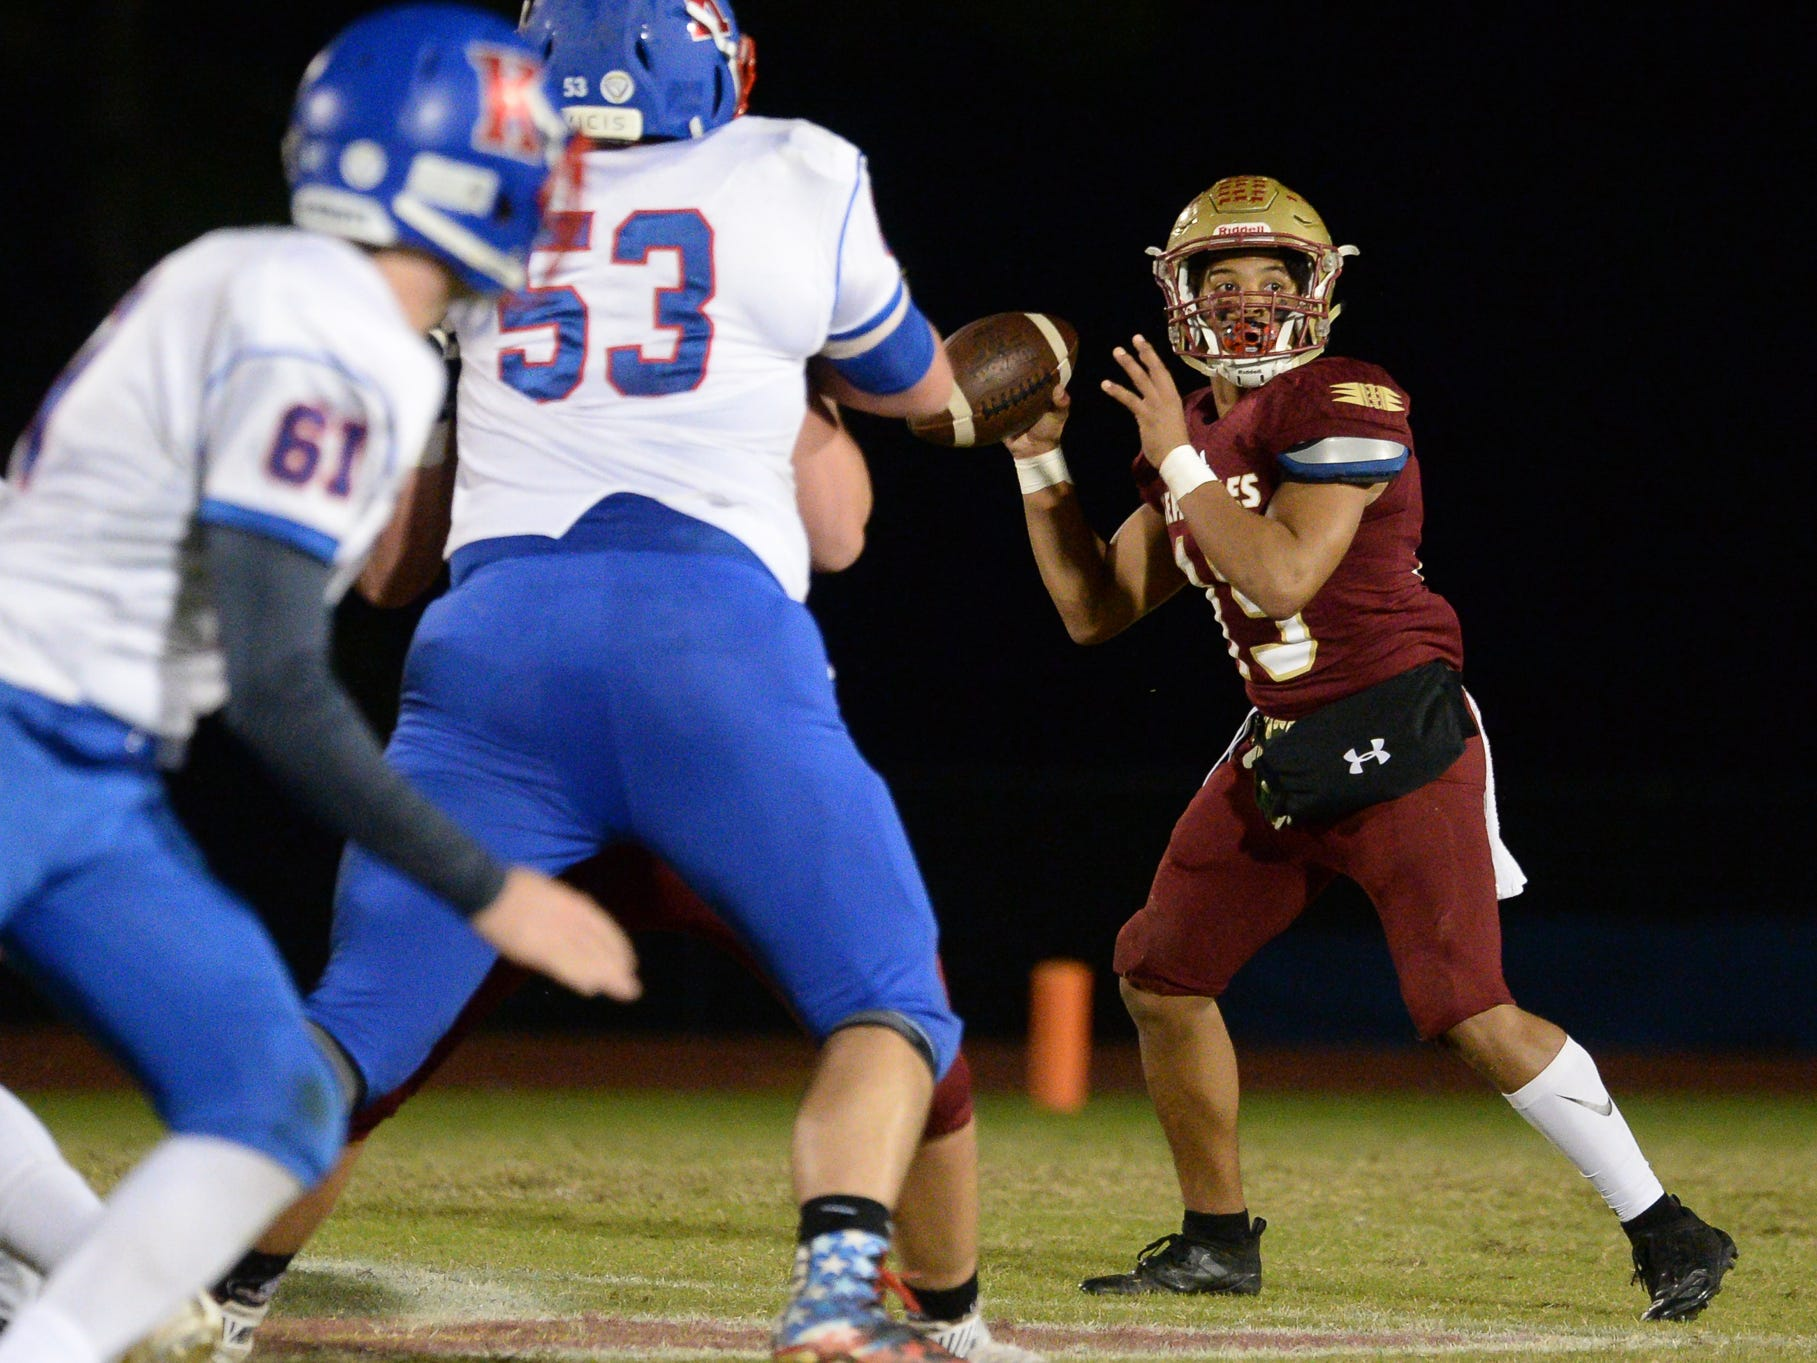 Florida High's Bryson Hill prepares to throw the ball during the King's Academy Lions vs. Florida High Seminoles, Class 3A state semifinal, Tallahassee, FL, Nov. 30, 2018.